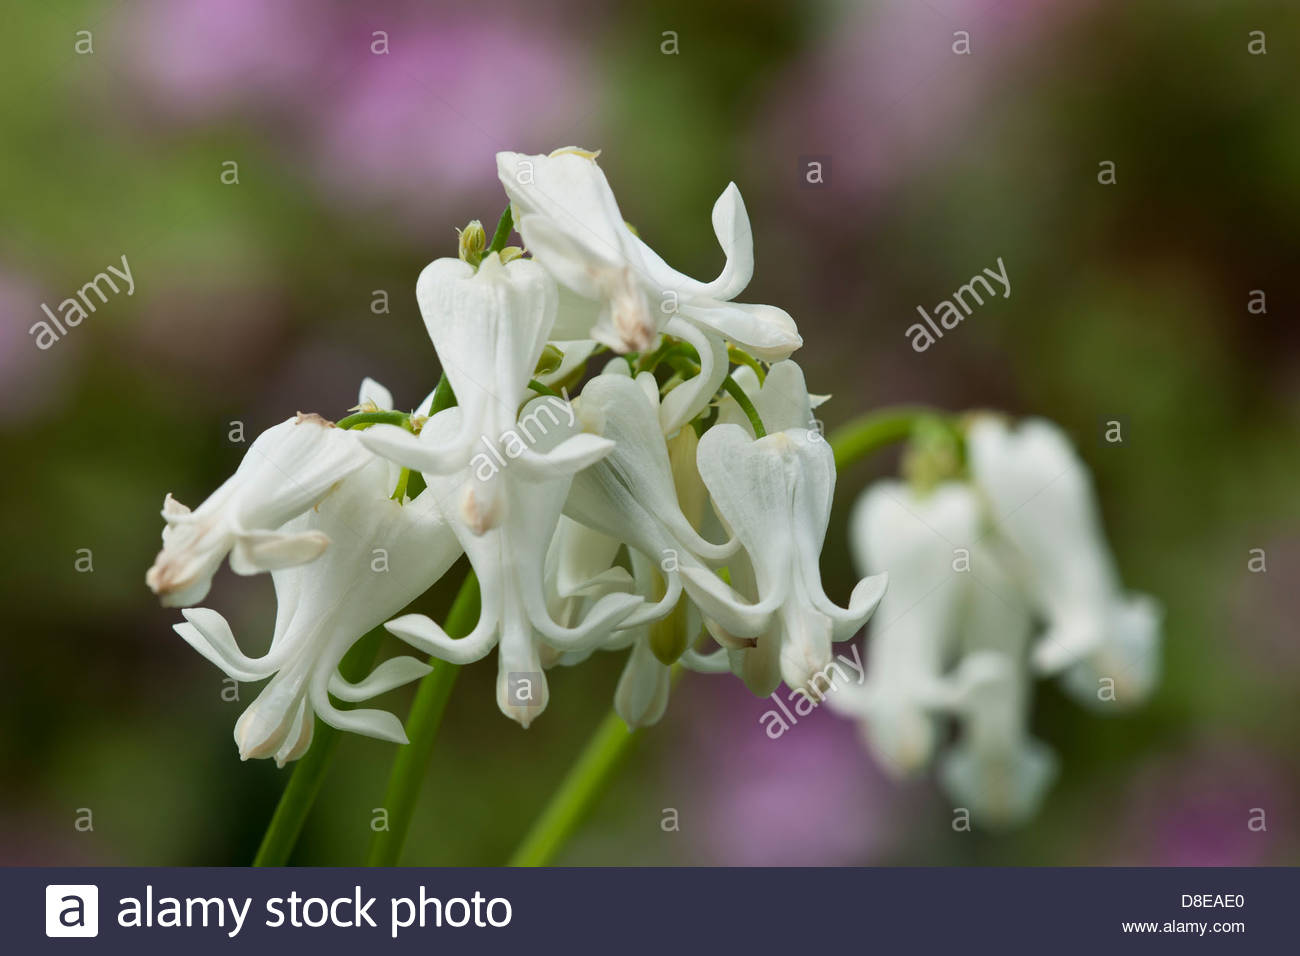 Dicentra Ivory Hearts Fern-leaf Bleedingheart summer flower perennial white blue leaf foliage May garden plant - Stock Image